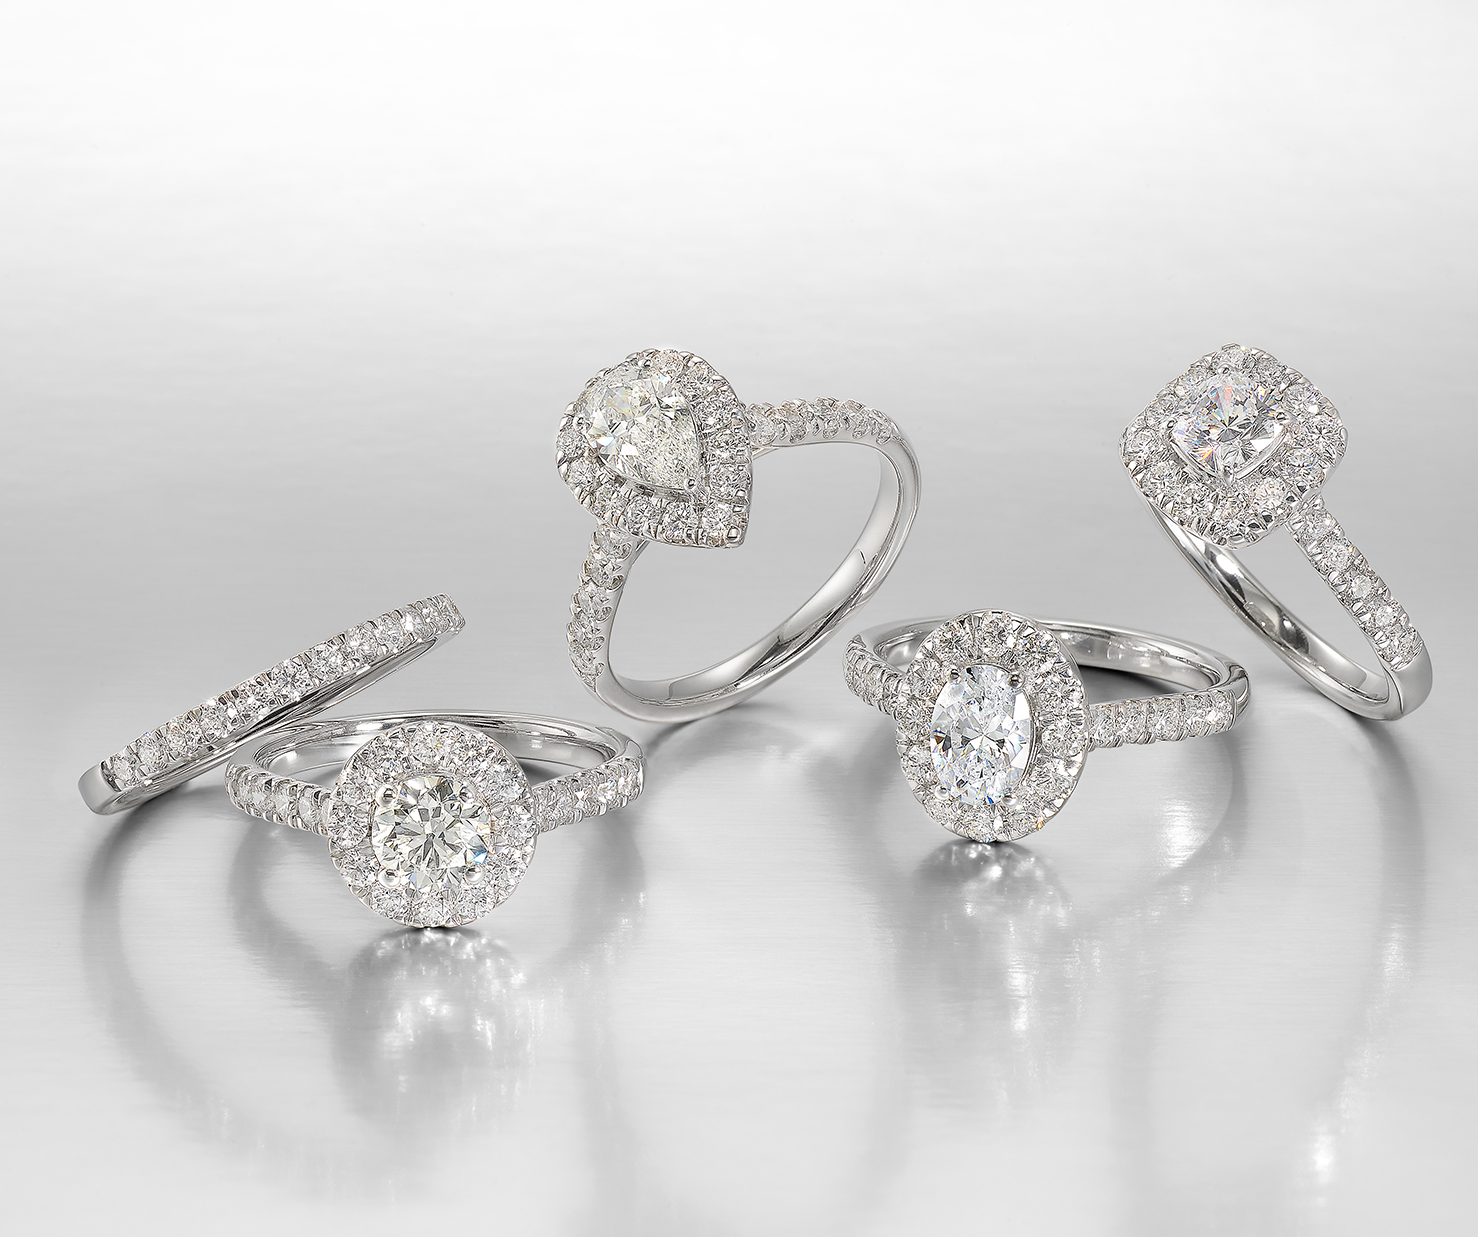 The five best affordable engagement ring styles